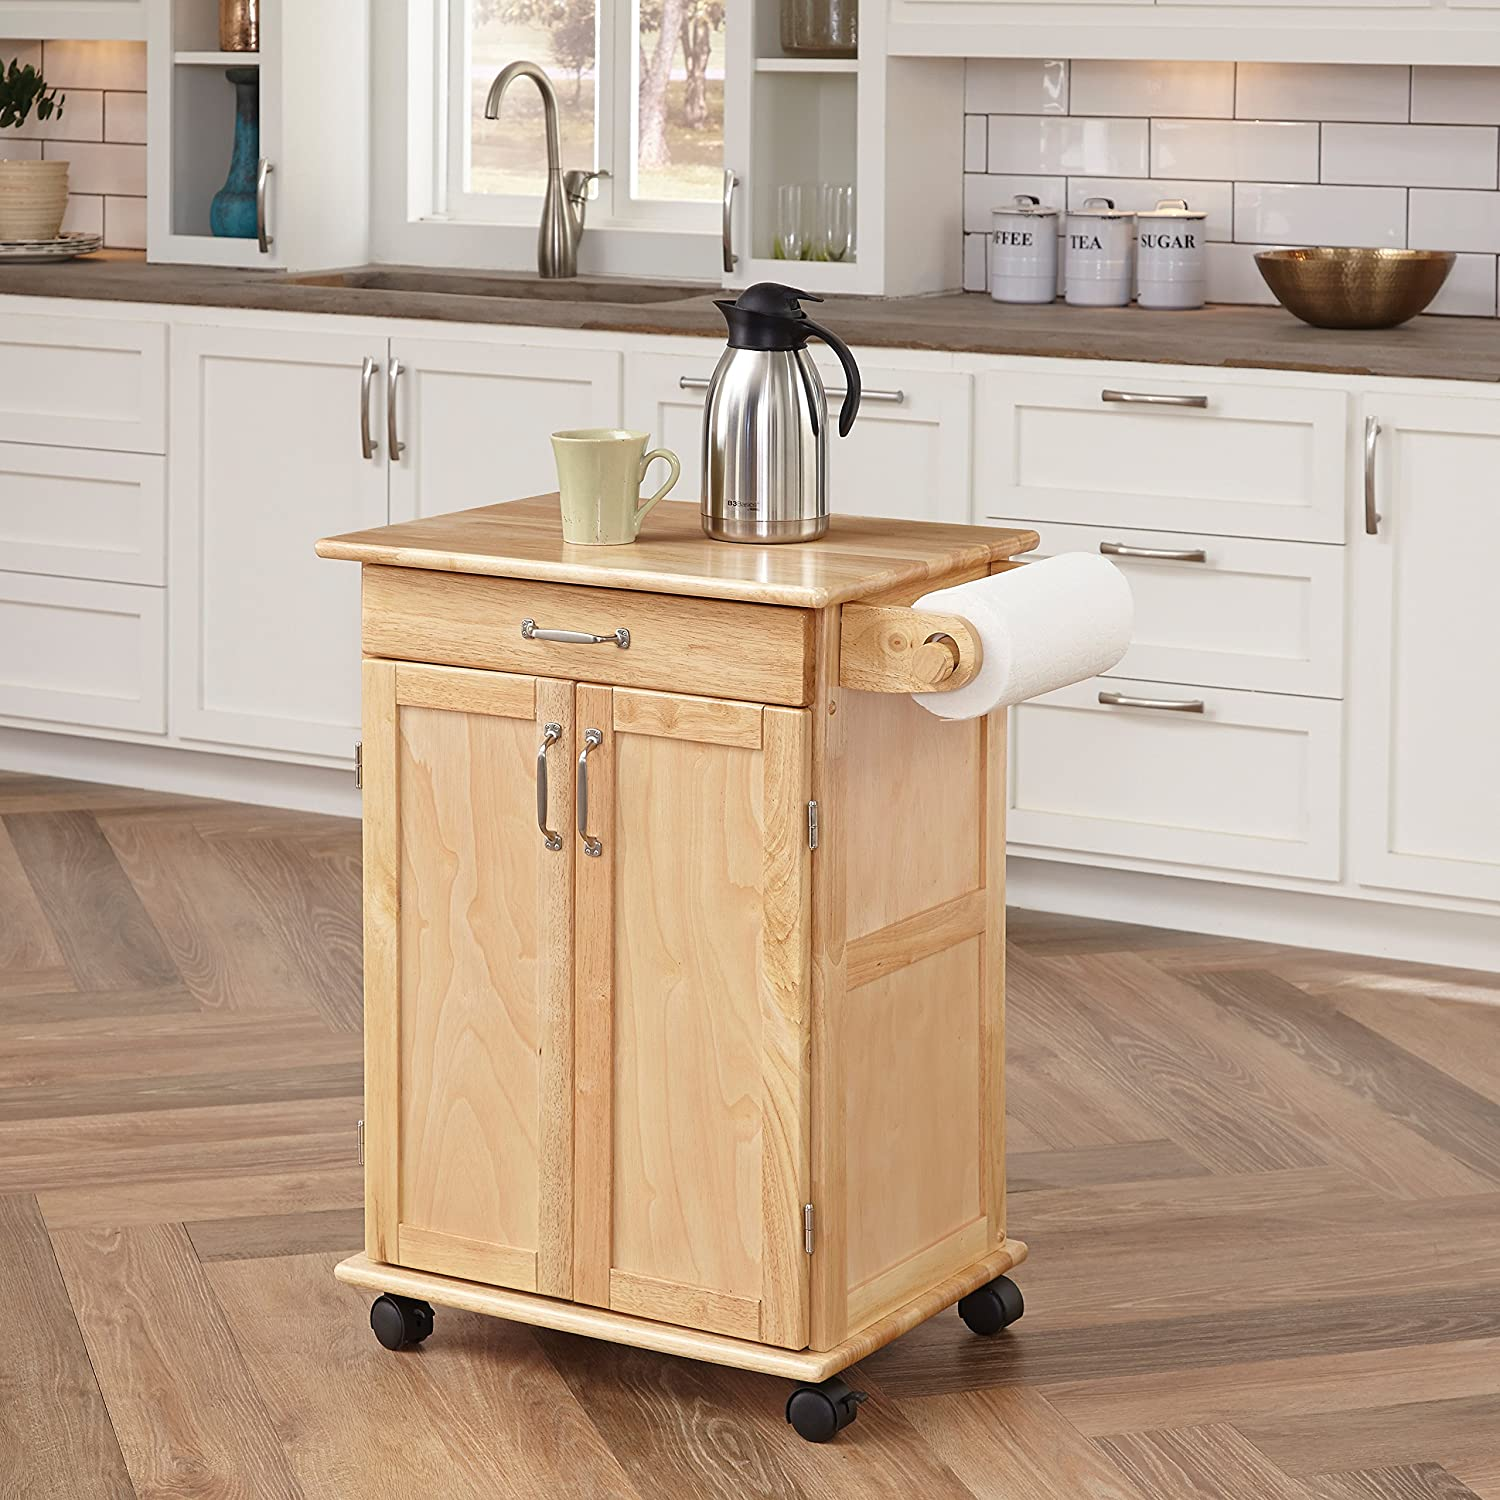 Oak Kitchen Carts And Islands Amazon home styles 5040 95 paneled door kitchen cart natural amazon home styles 5040 95 paneled door kitchen cart natural finish bar serving carts workwithnaturefo